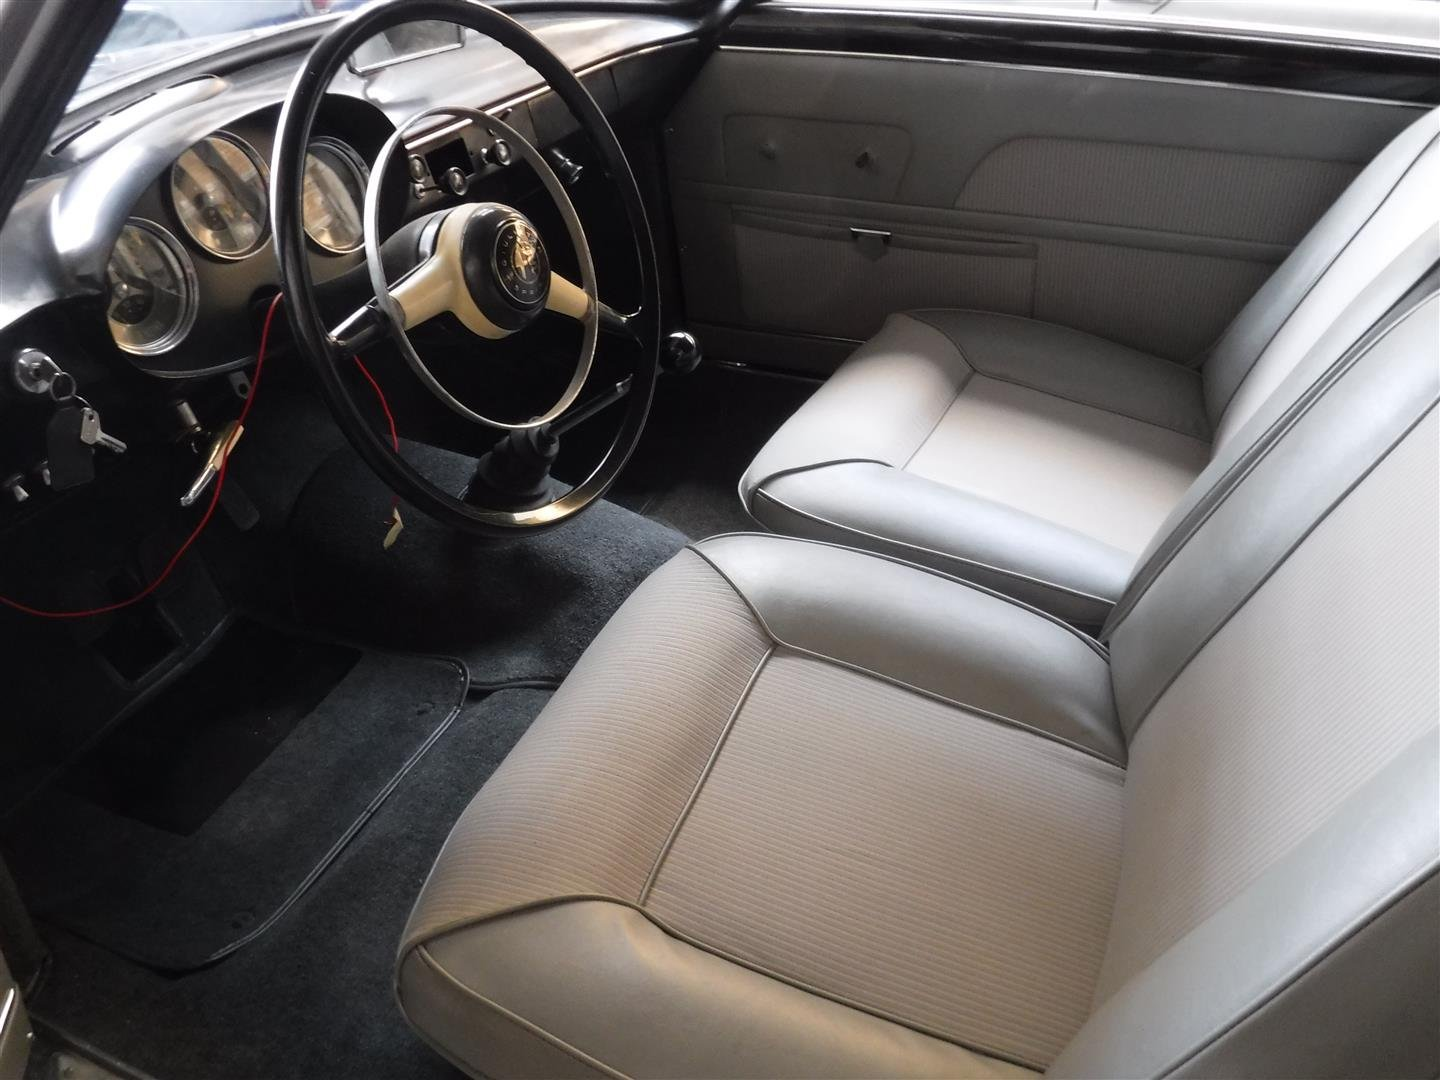 1956 ALfa Romeo 1300 sprint type 750 For Sale (picture 6 of 6)